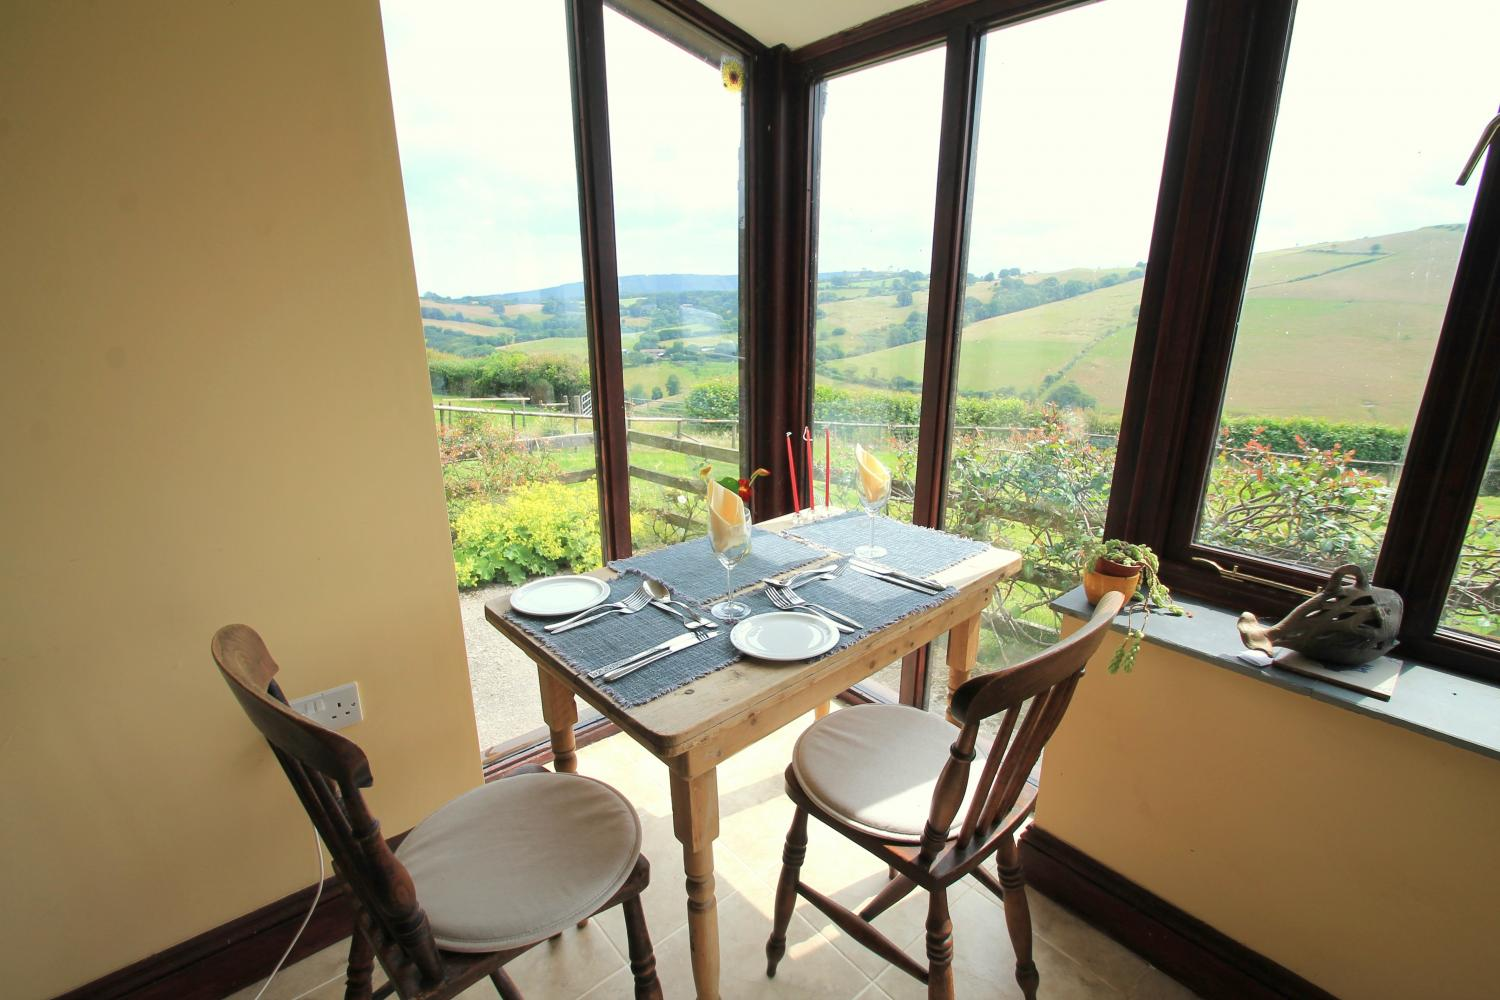 Dine in the conservatory at Higher Putham Barn